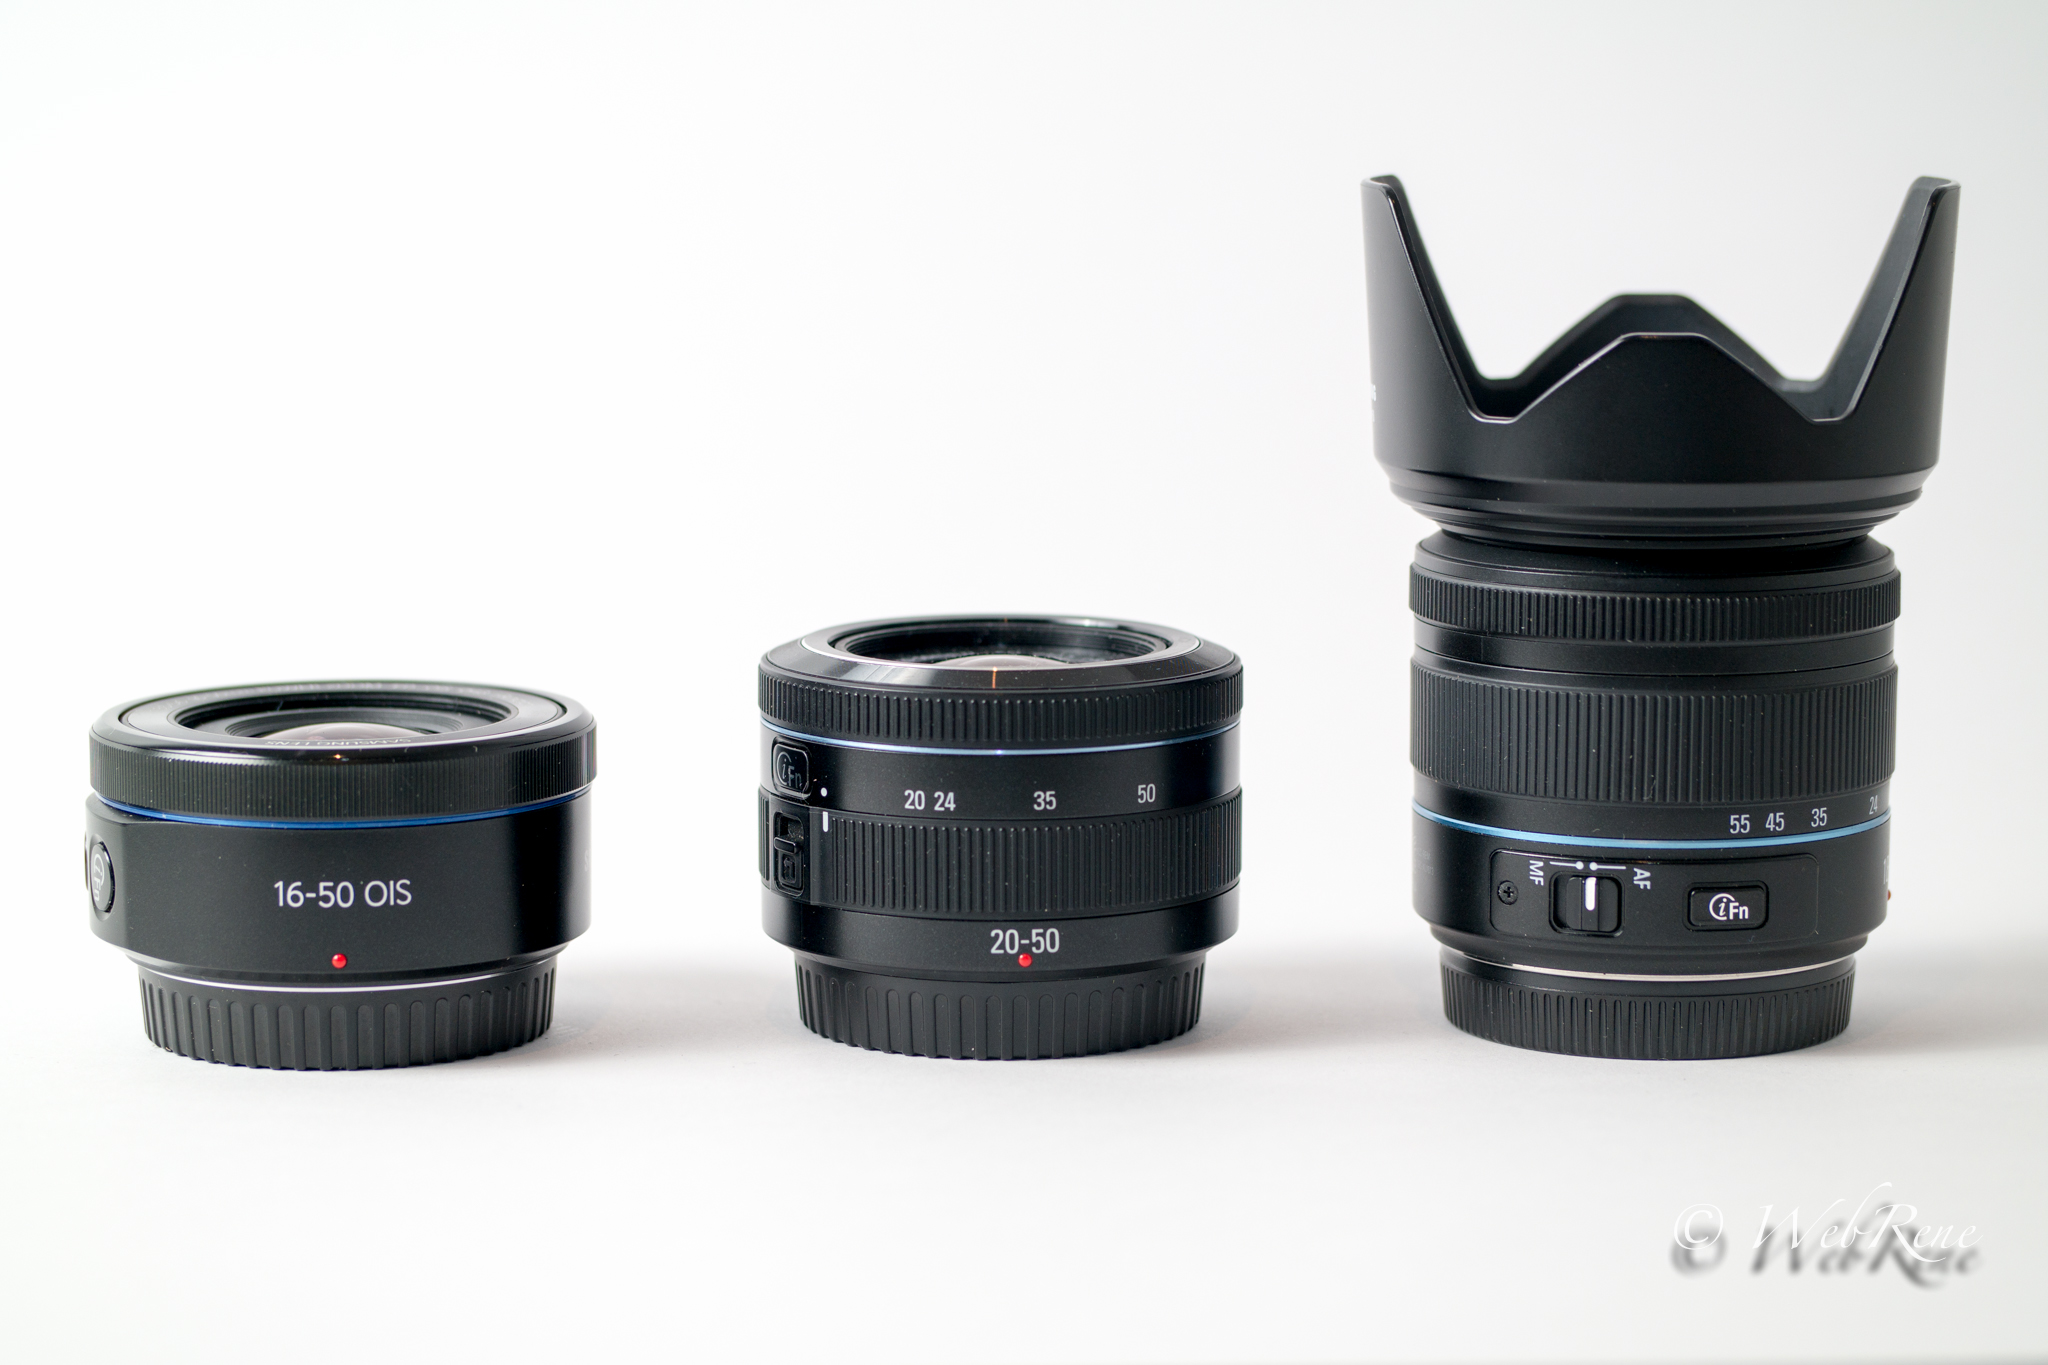 Samsung NX – 16-50mm vs. 18-55mm vs. 20-50mm